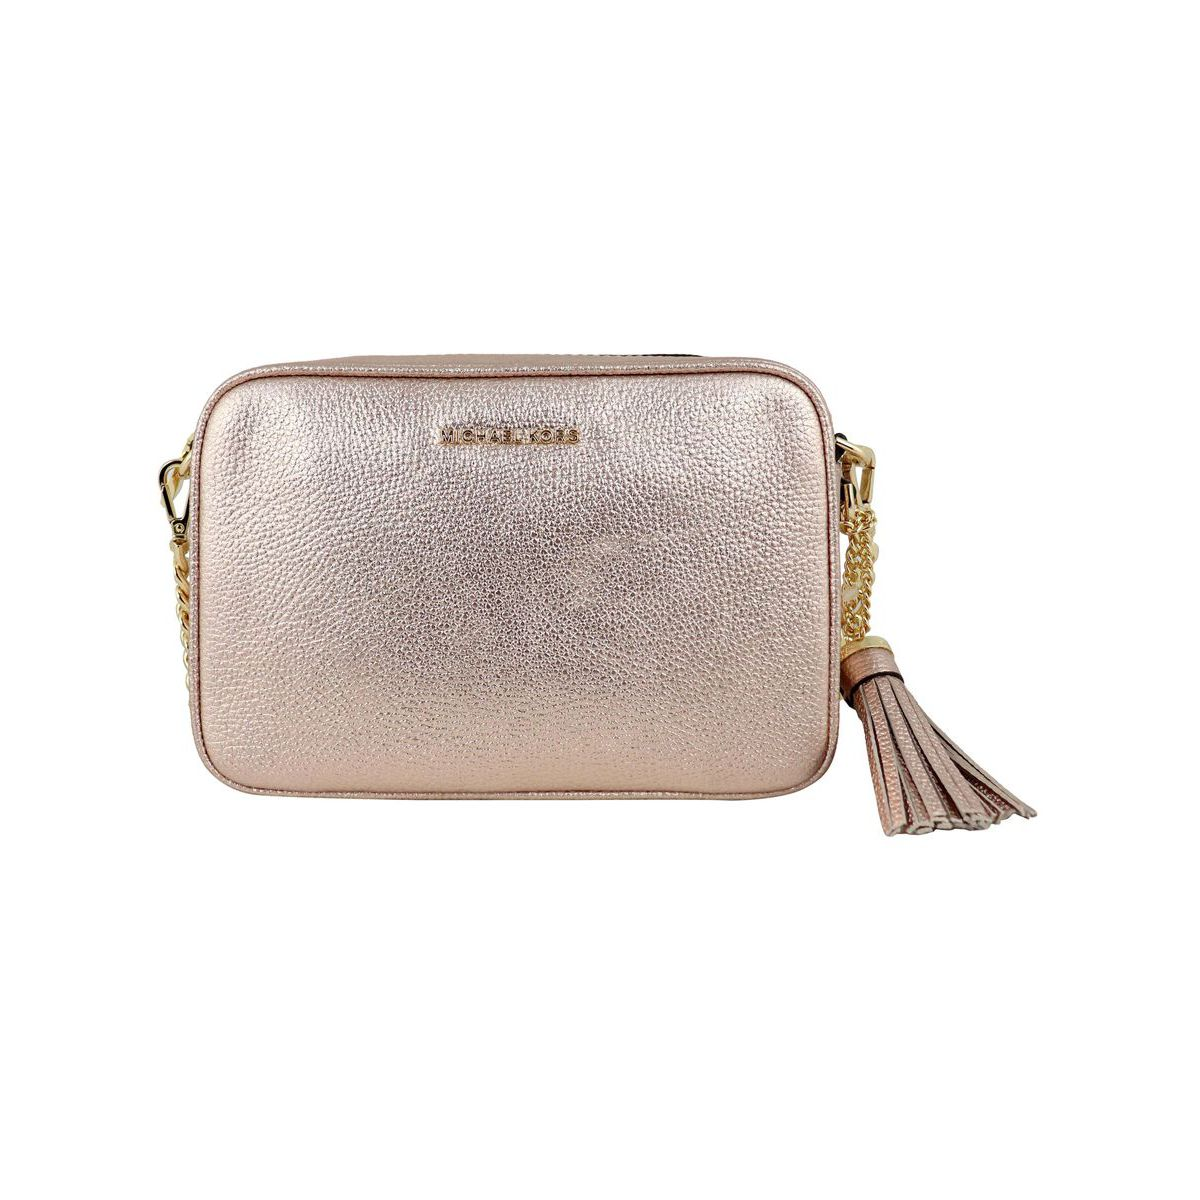 Shoulder bag in GINNY metallic leather Pink Michael Kors